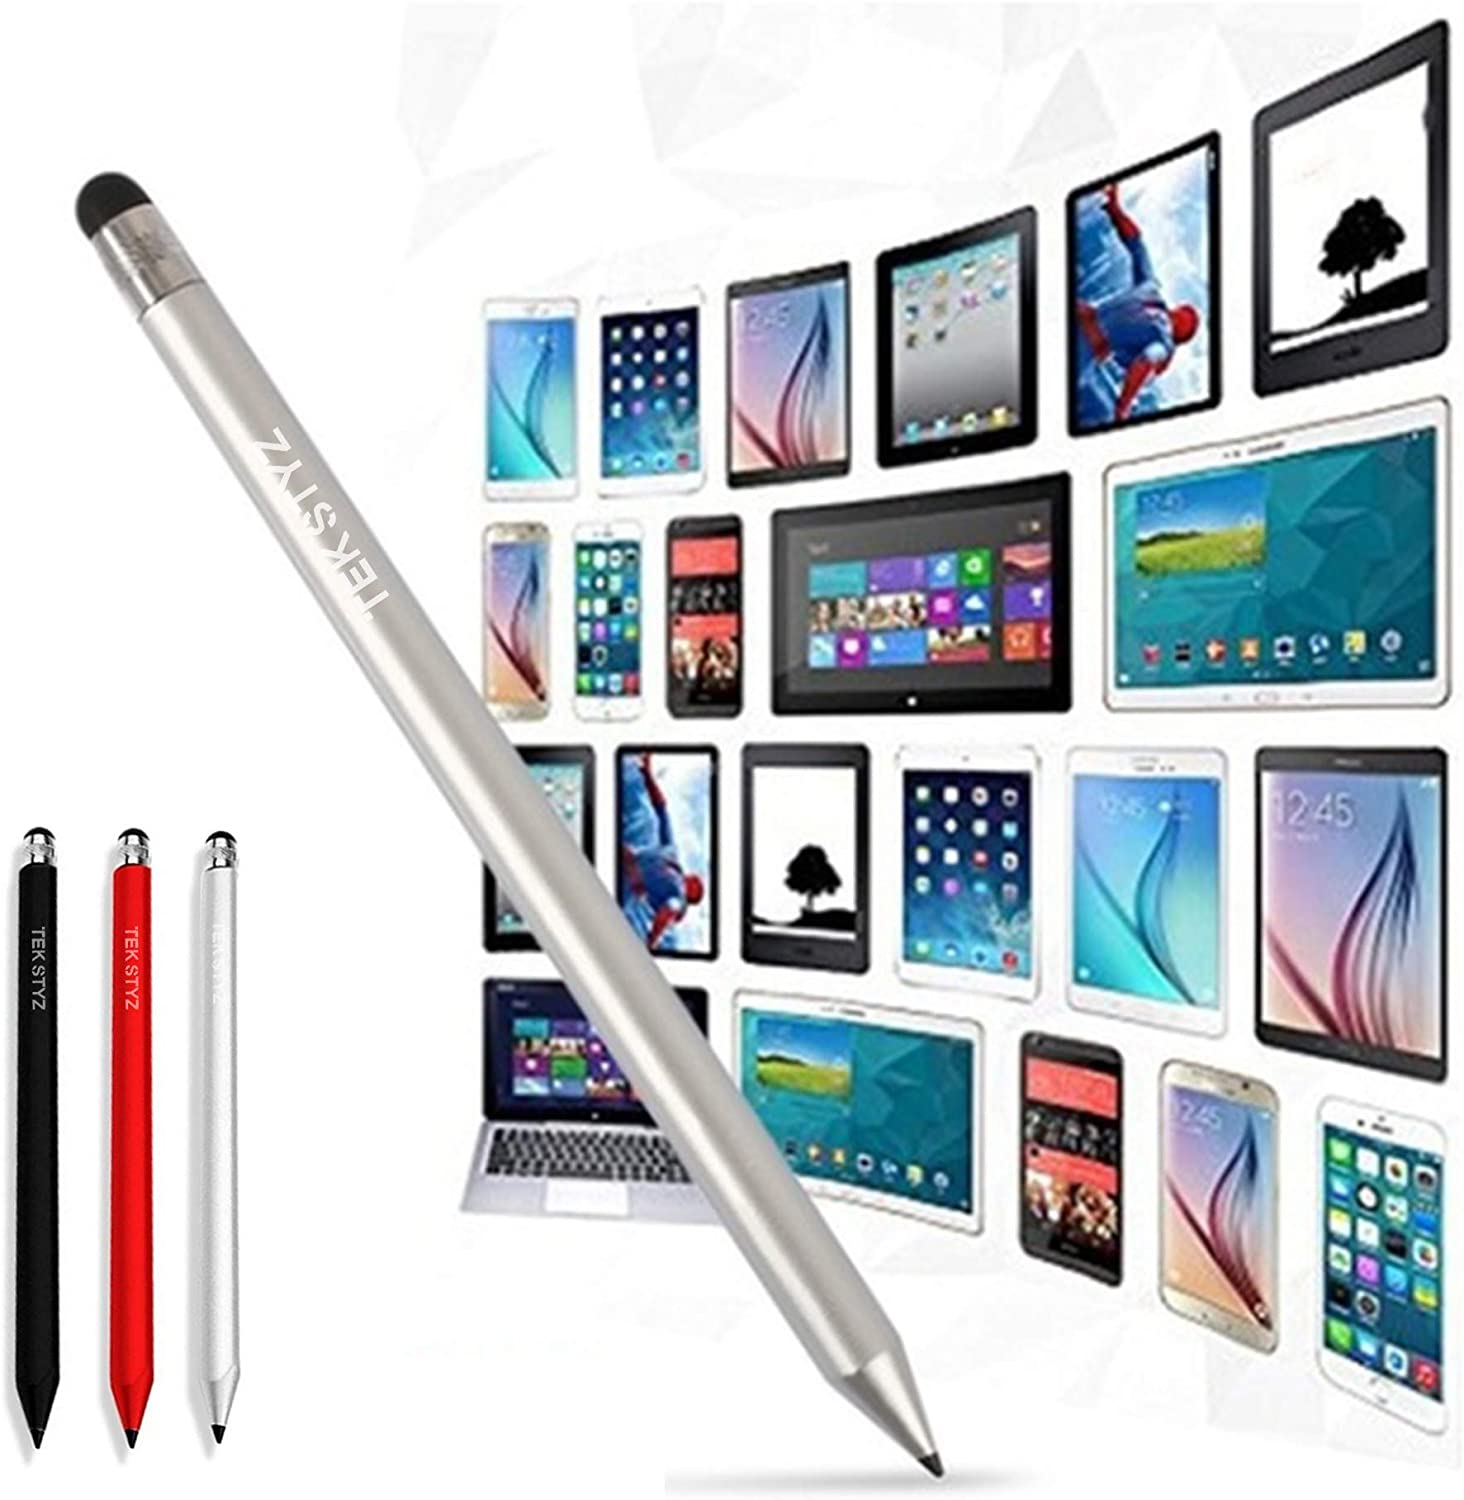 3 Pack - Silver Red Black Pen Works for Sony Xperia 10 Plus with Custom High Sensitivity Touch and Black Ink! Tek Styz PRO Stylus